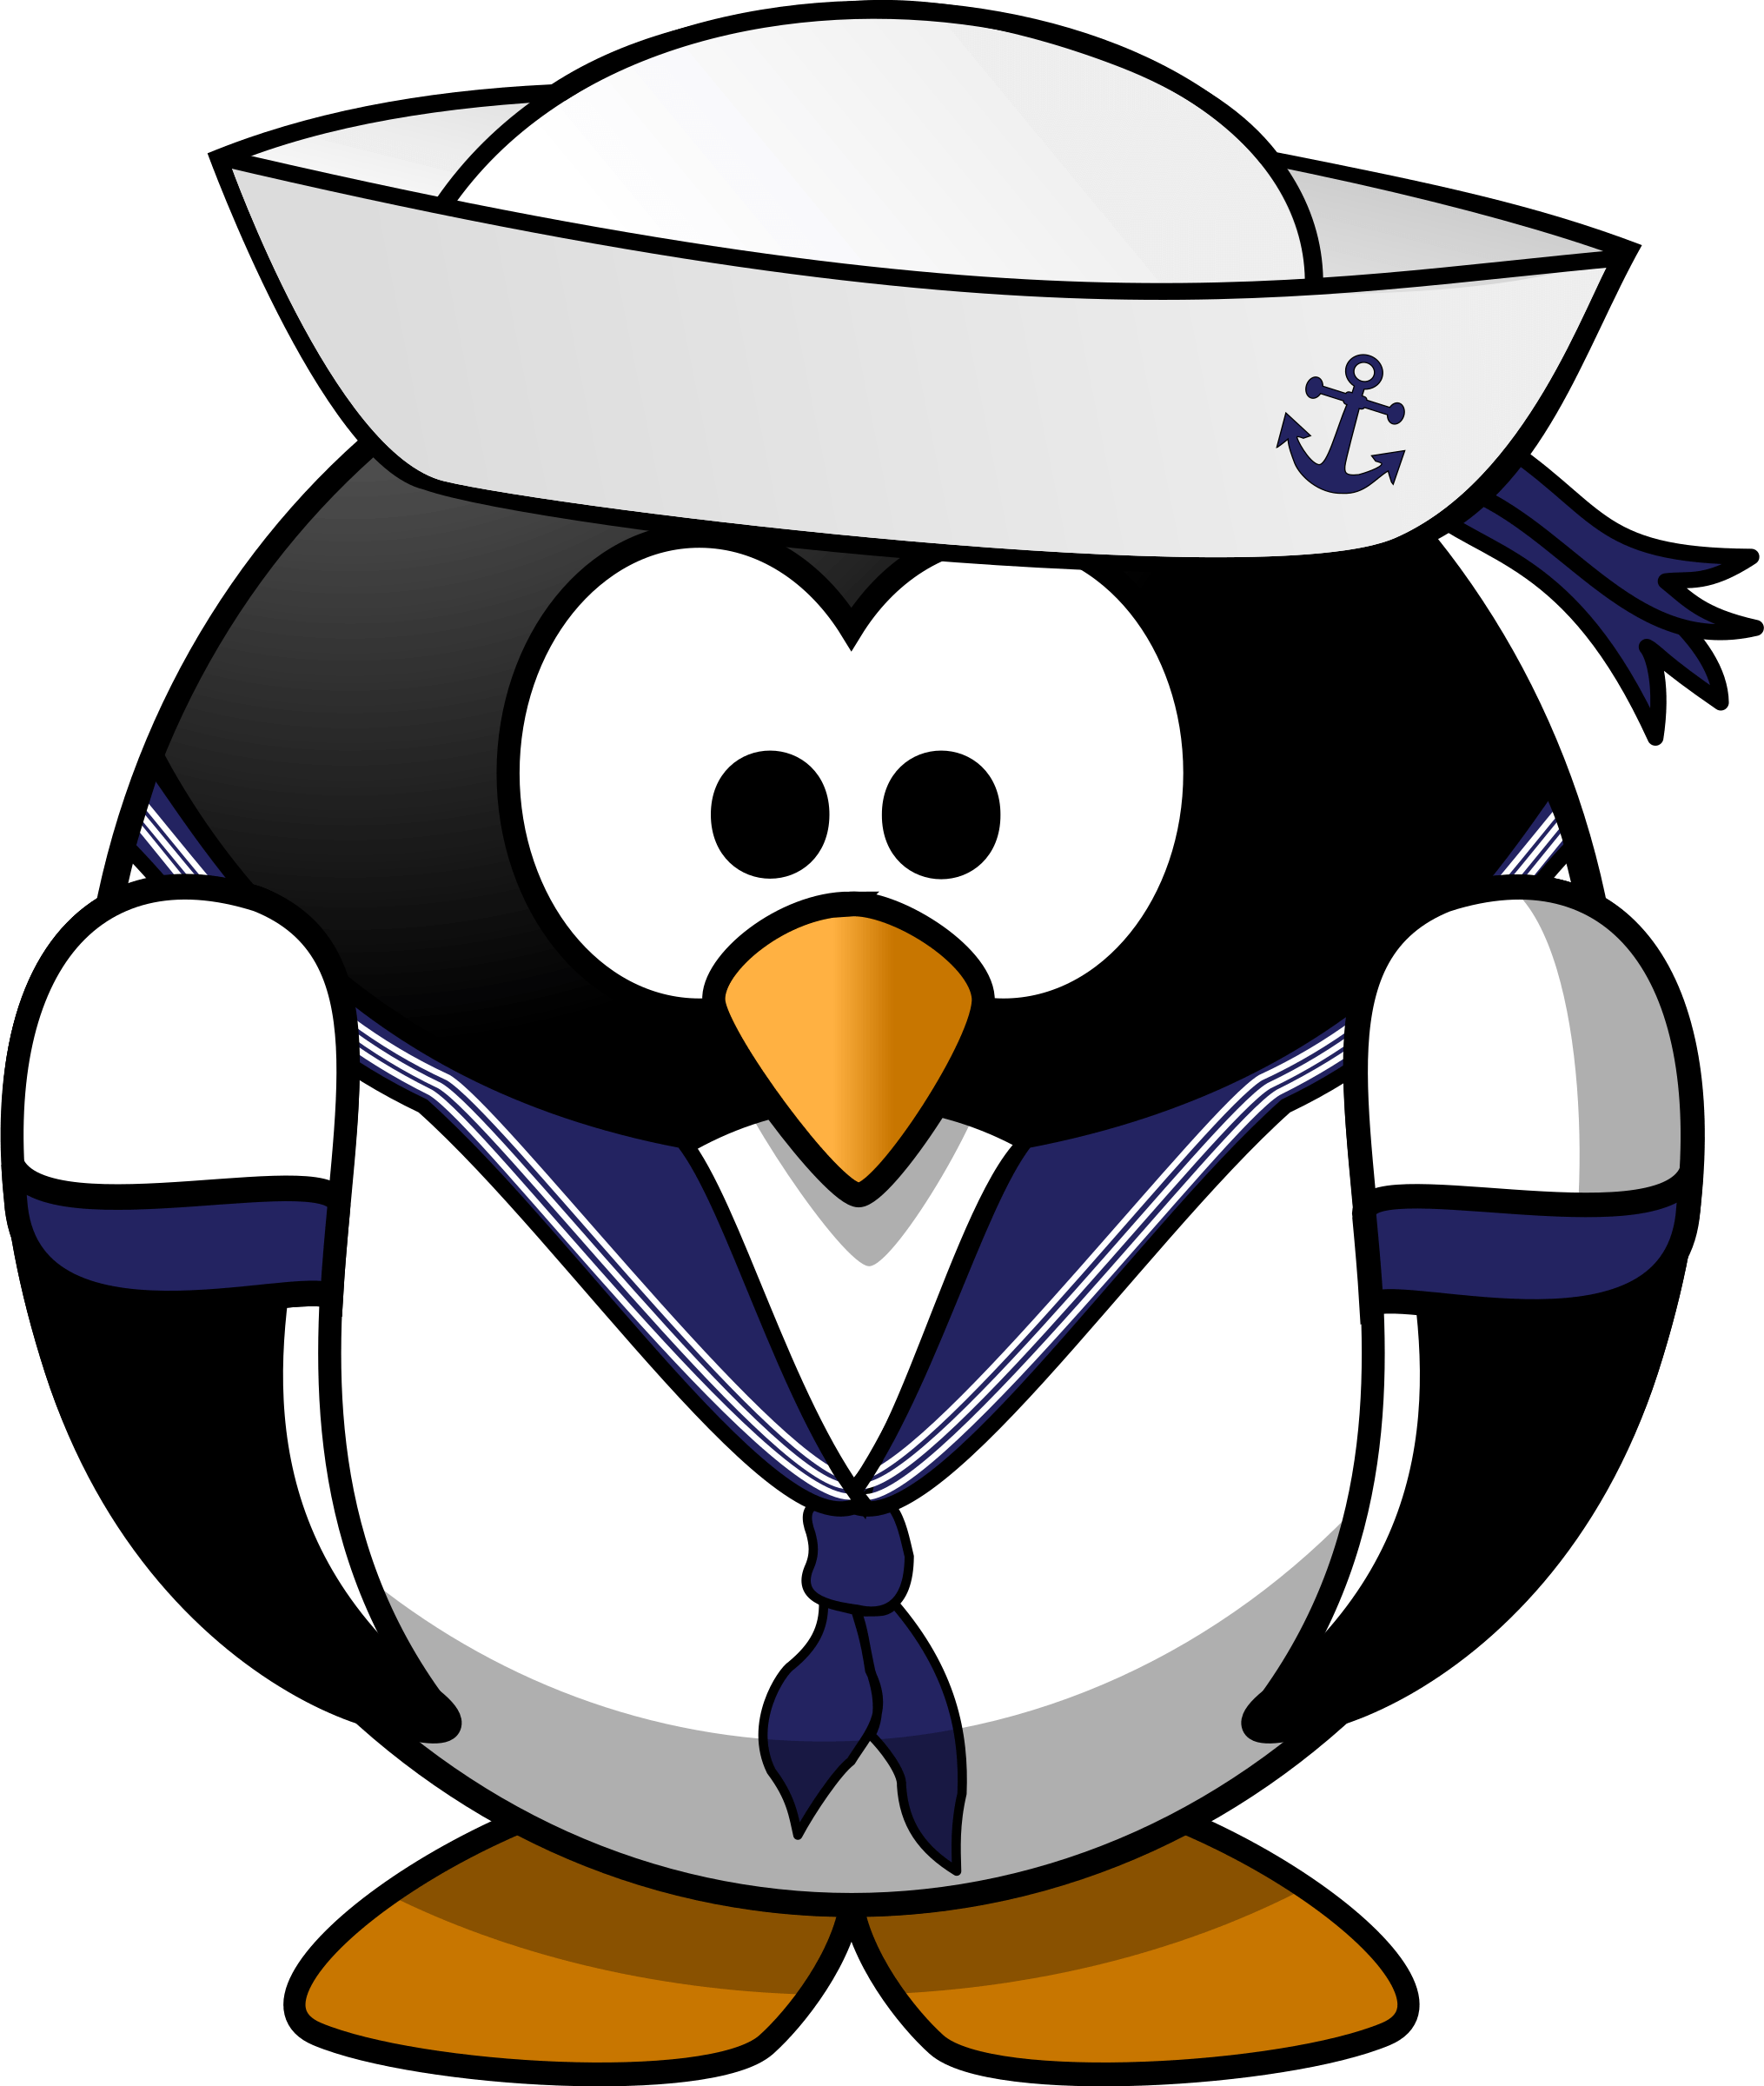 Sailor clipart sailer. Free animated cliparts download